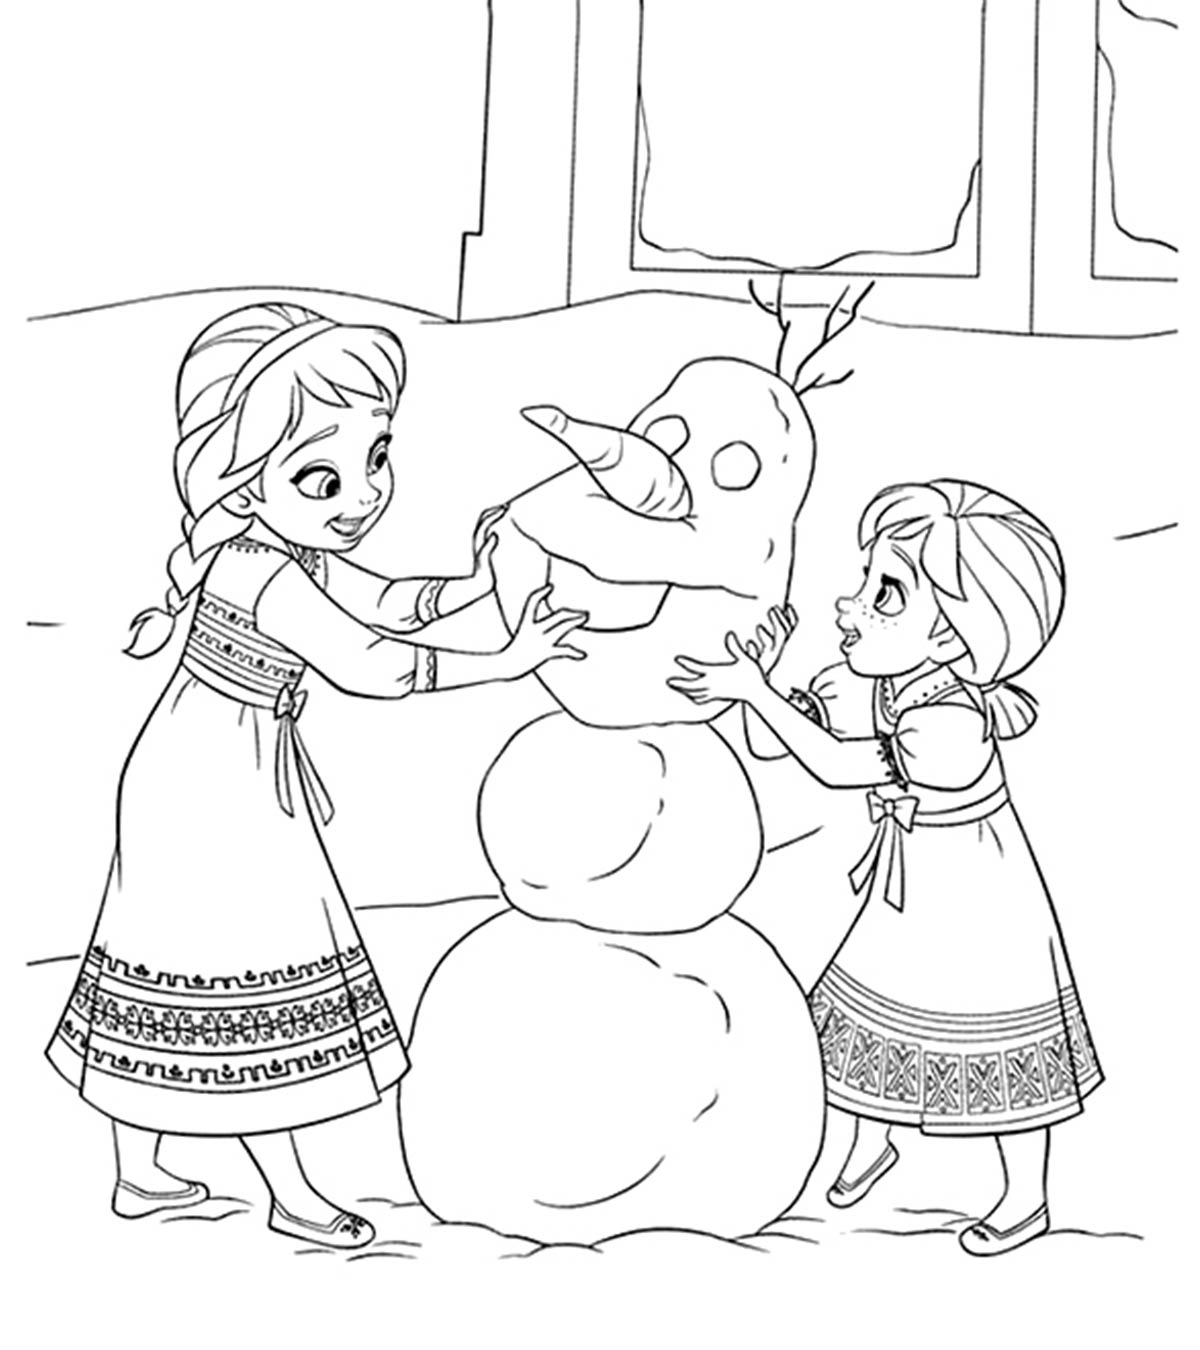 coloring pictures of frozen characters free printable frozen coloring pages for kids best coloring characters pictures frozen of